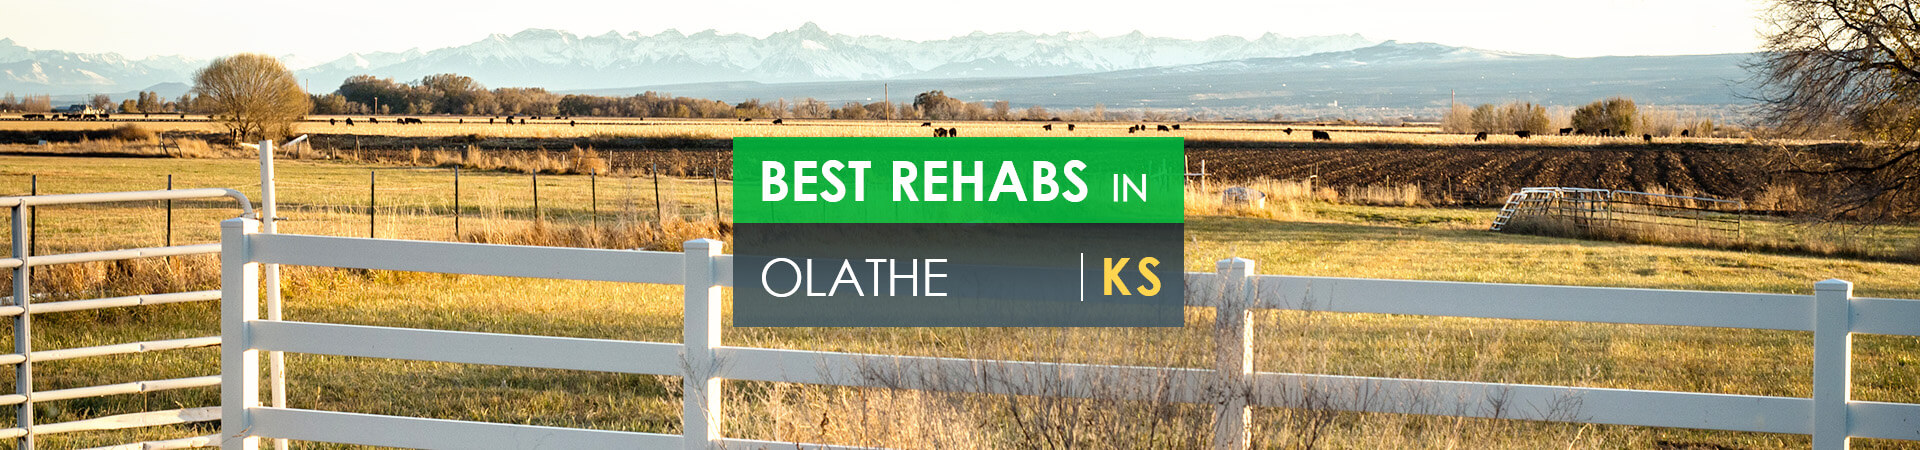 Best rehabs in Olathe, KS